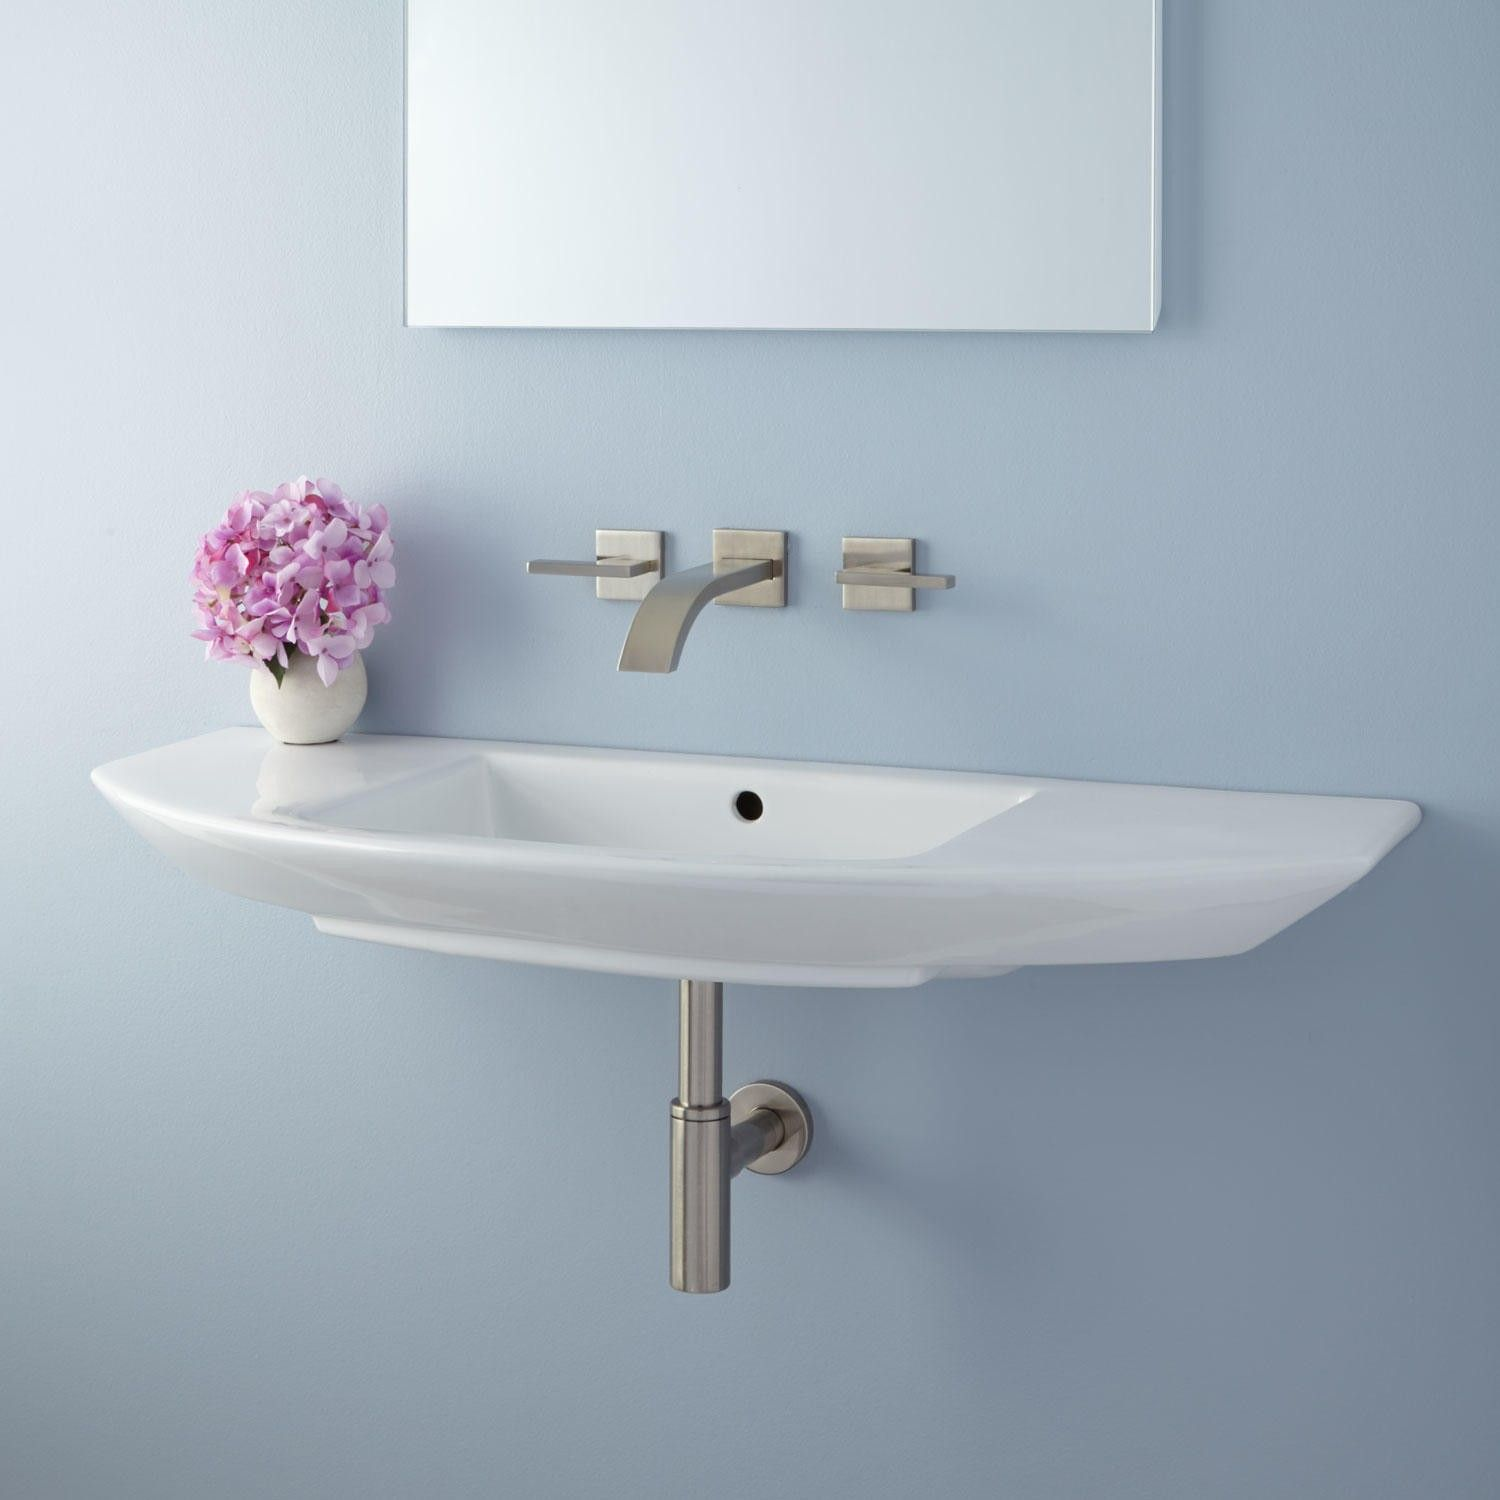 Issa Wall Mount Bathroom Sink Bathroom Tiny Bathroom Sink Small Bathroom Sinks Wall Mounted Bathroom Sinks